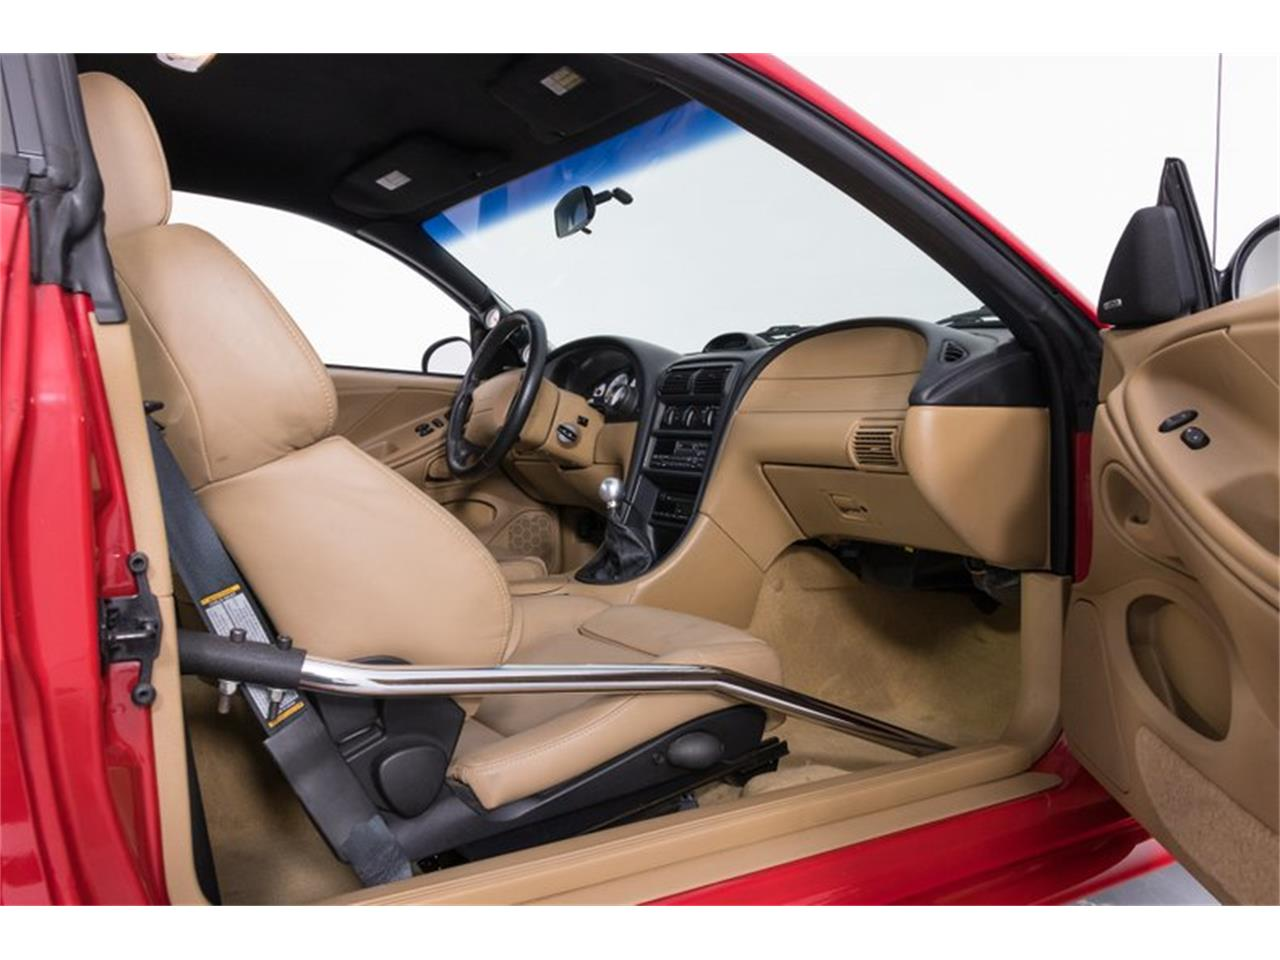 Large Picture of 1997 Ford Mustang - $16,995.00 Offered by Fast Lane Classic Cars Inc. - Q83F